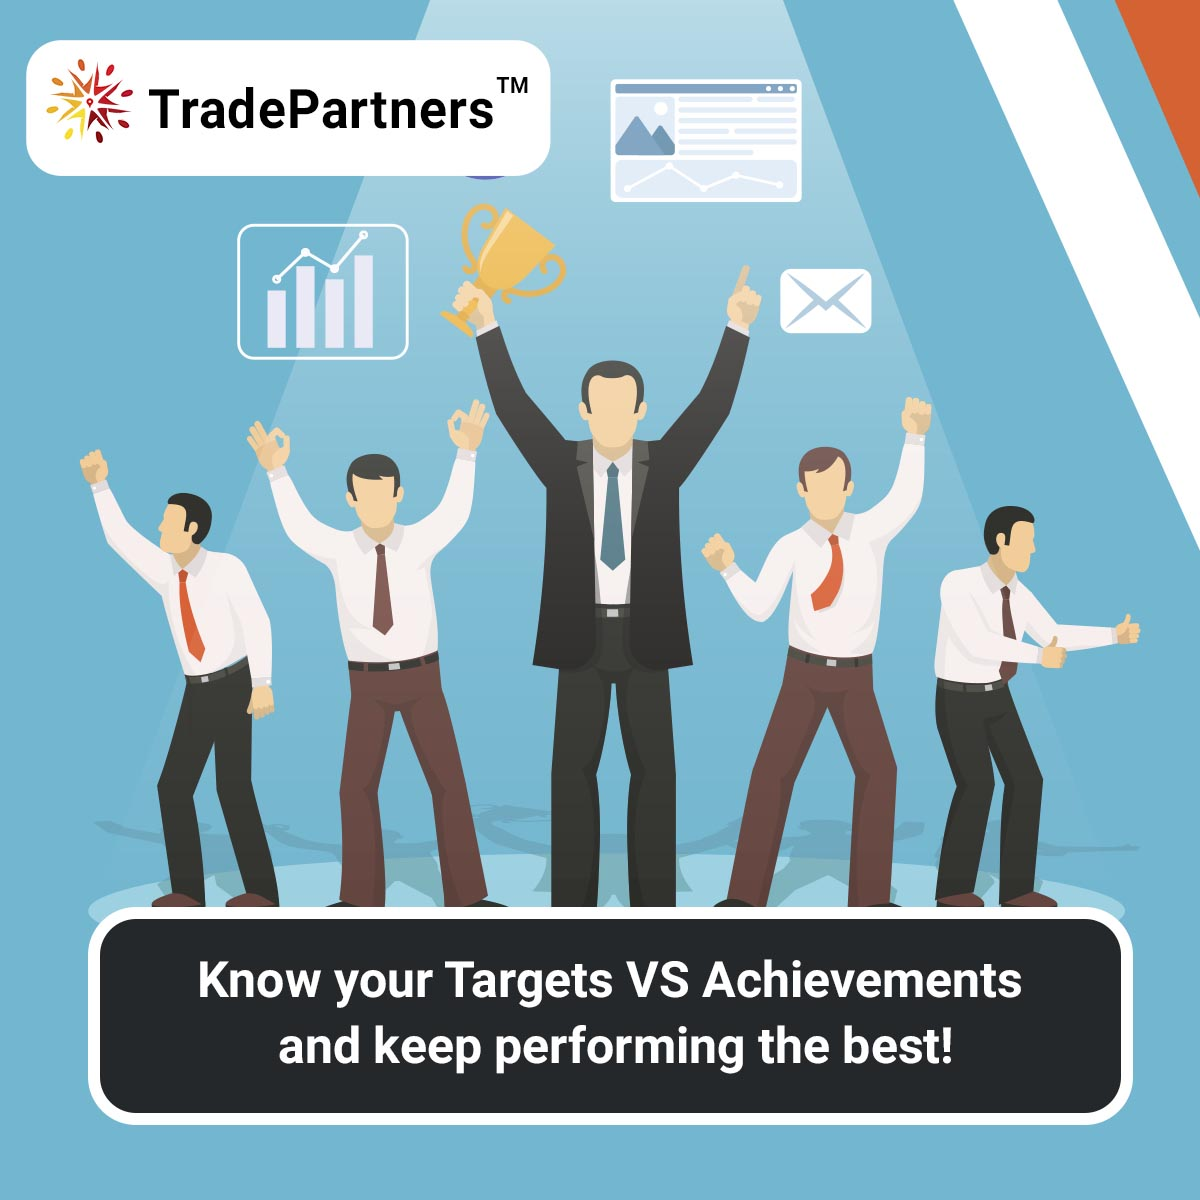 Your team will always perform the best with the TradePartners™! Download the app now @ https://t.co/Ue8nbOBFJ5 Reach Us @ https://t.co/YHMrN6Bw5N  #Sales #ASM #TGT #achievement #TargetVsAchievements #salesexecutive #target #salestarget #technology #salestechnology #business https://t.co/TDE0cY4MaJ